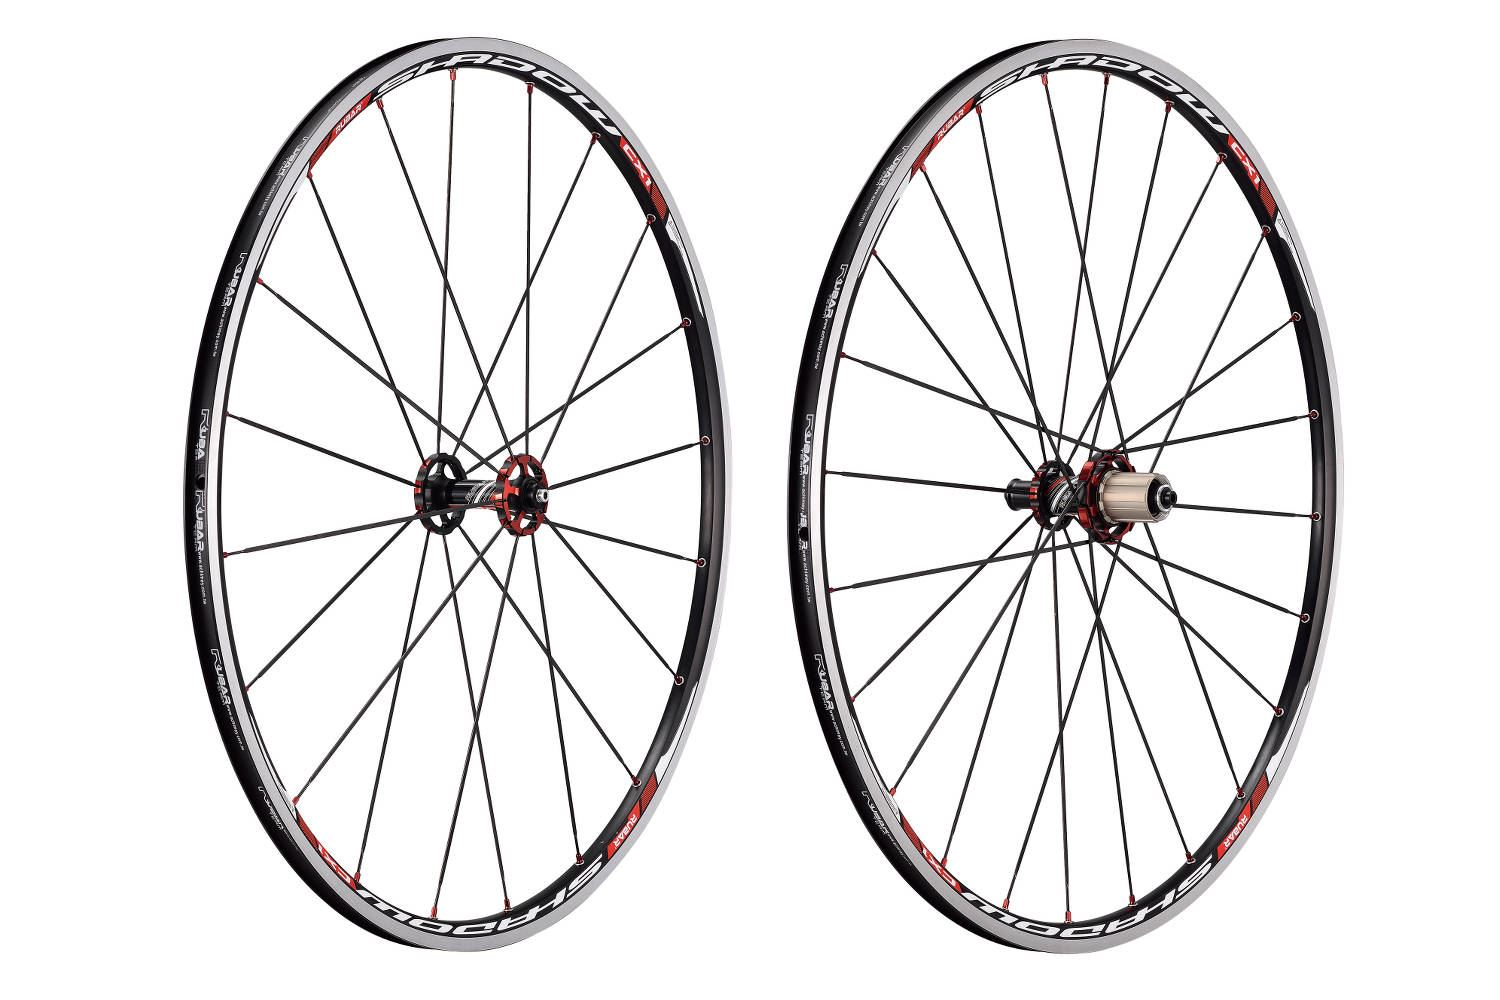 Rubar Shadow Cx1 700c Road Bike Wheelset Clincher